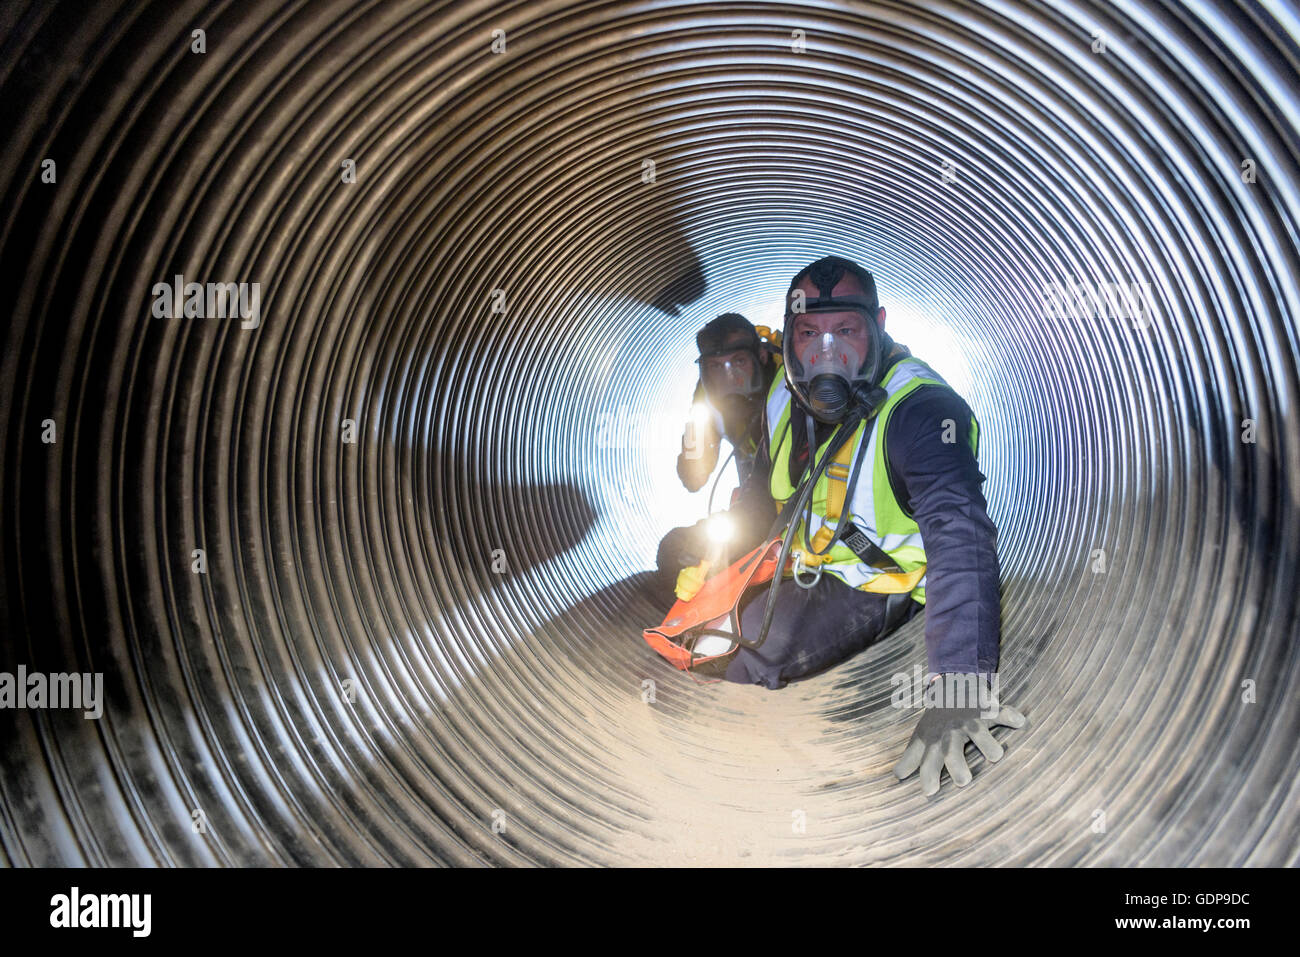 Apprentice builders training in confined space in training facility - Stock Image